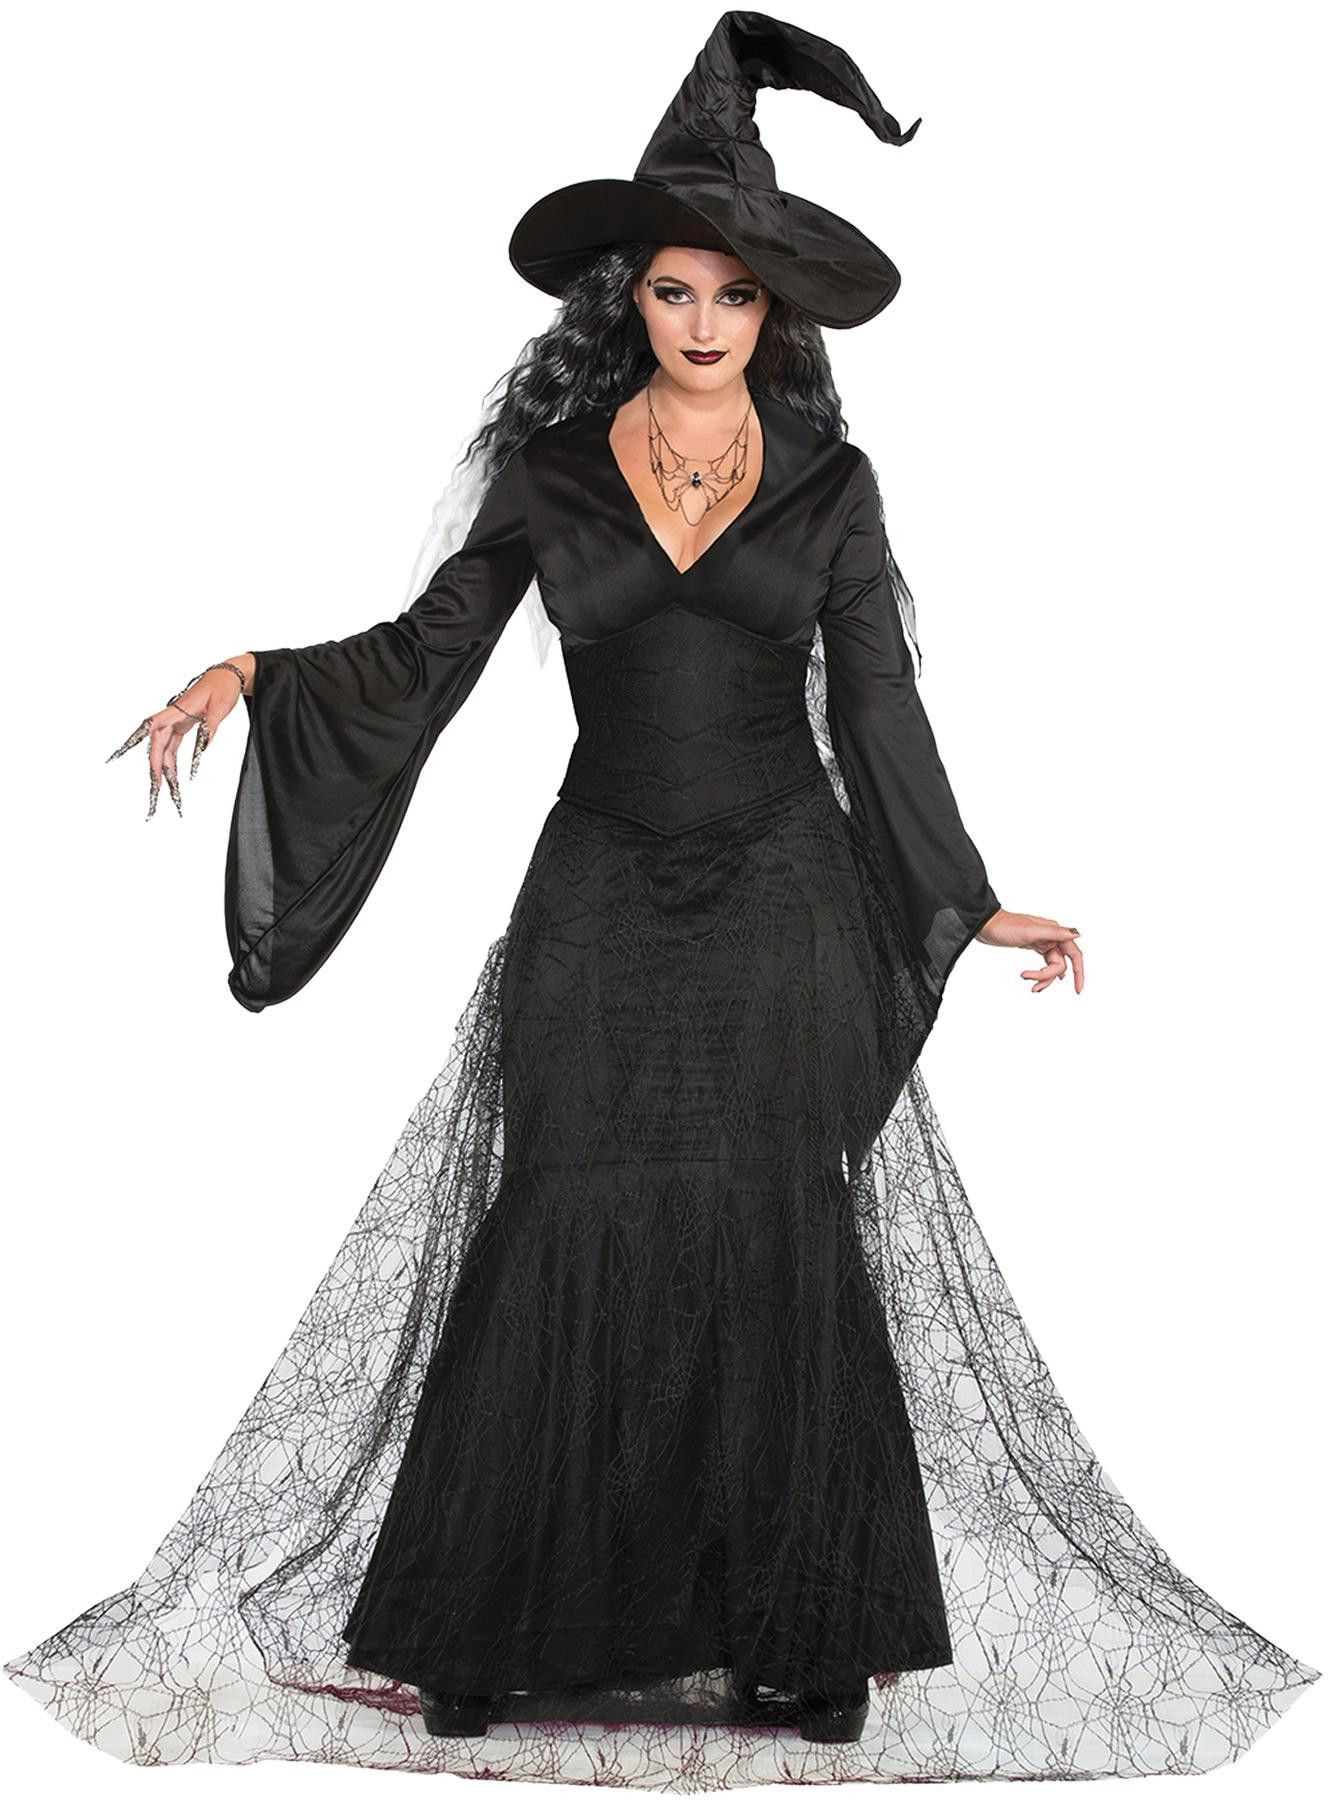 Black Mist Witch Adult Ml Costumes for women